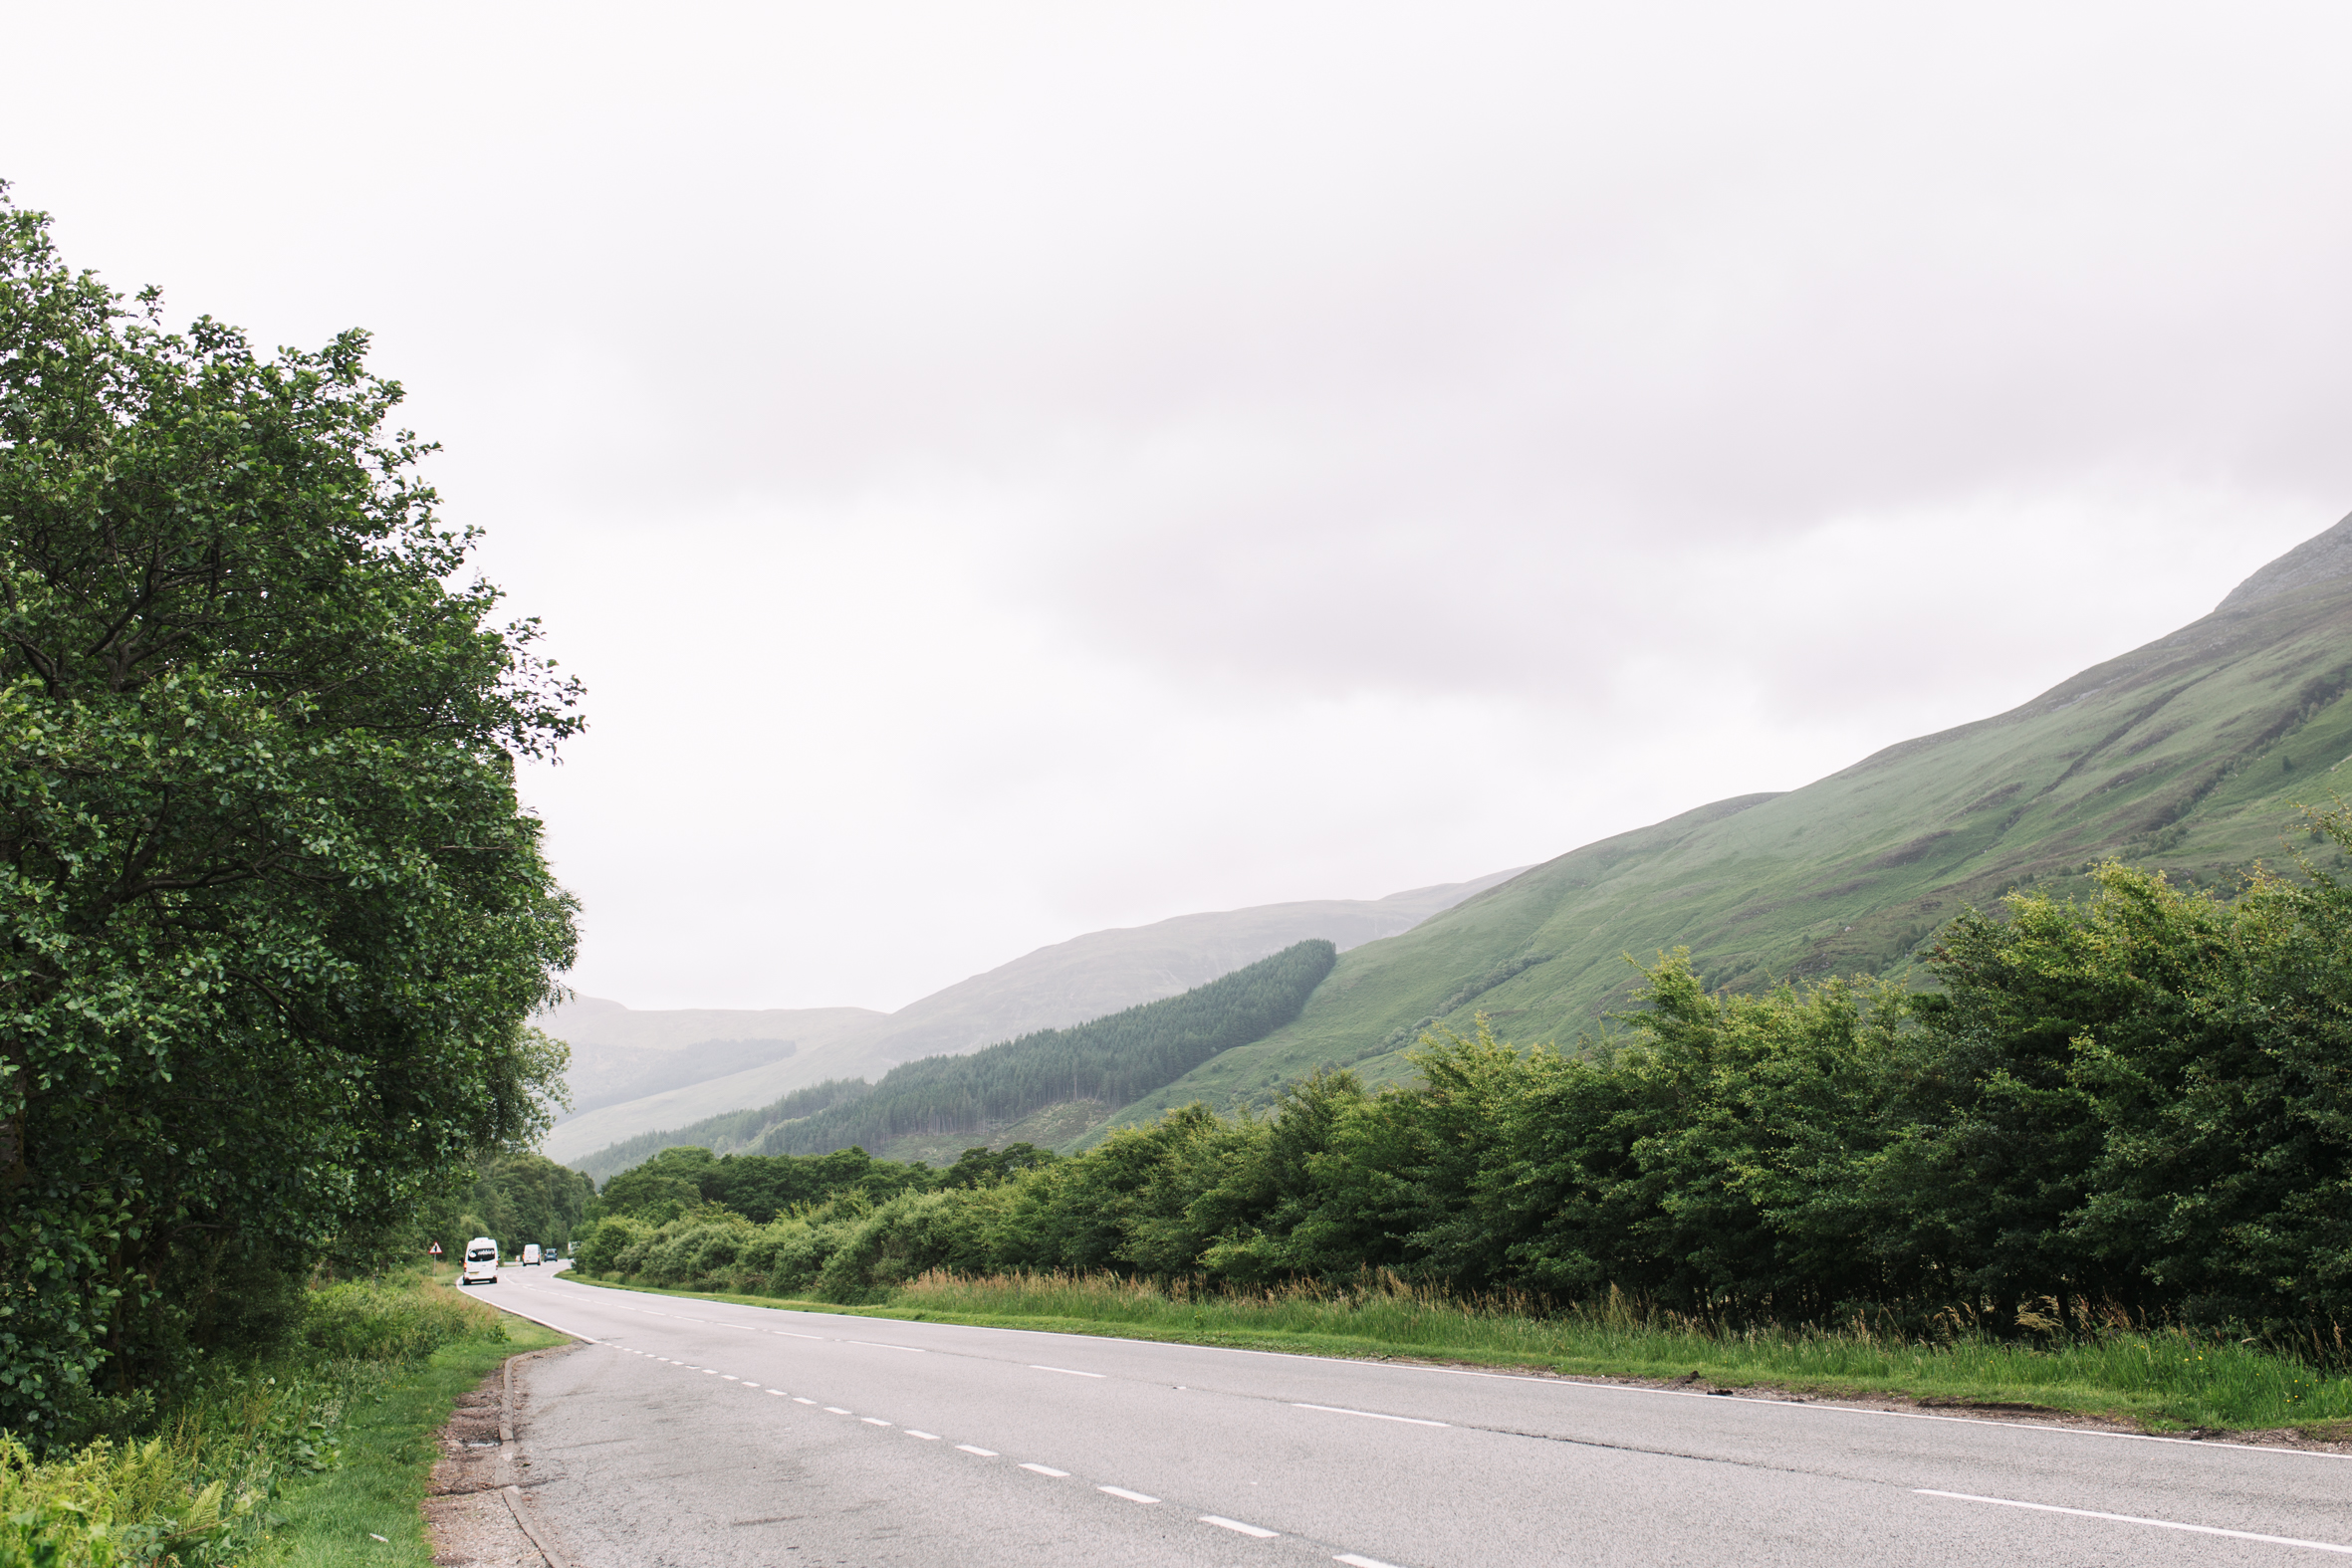 The road trip up to the highlands